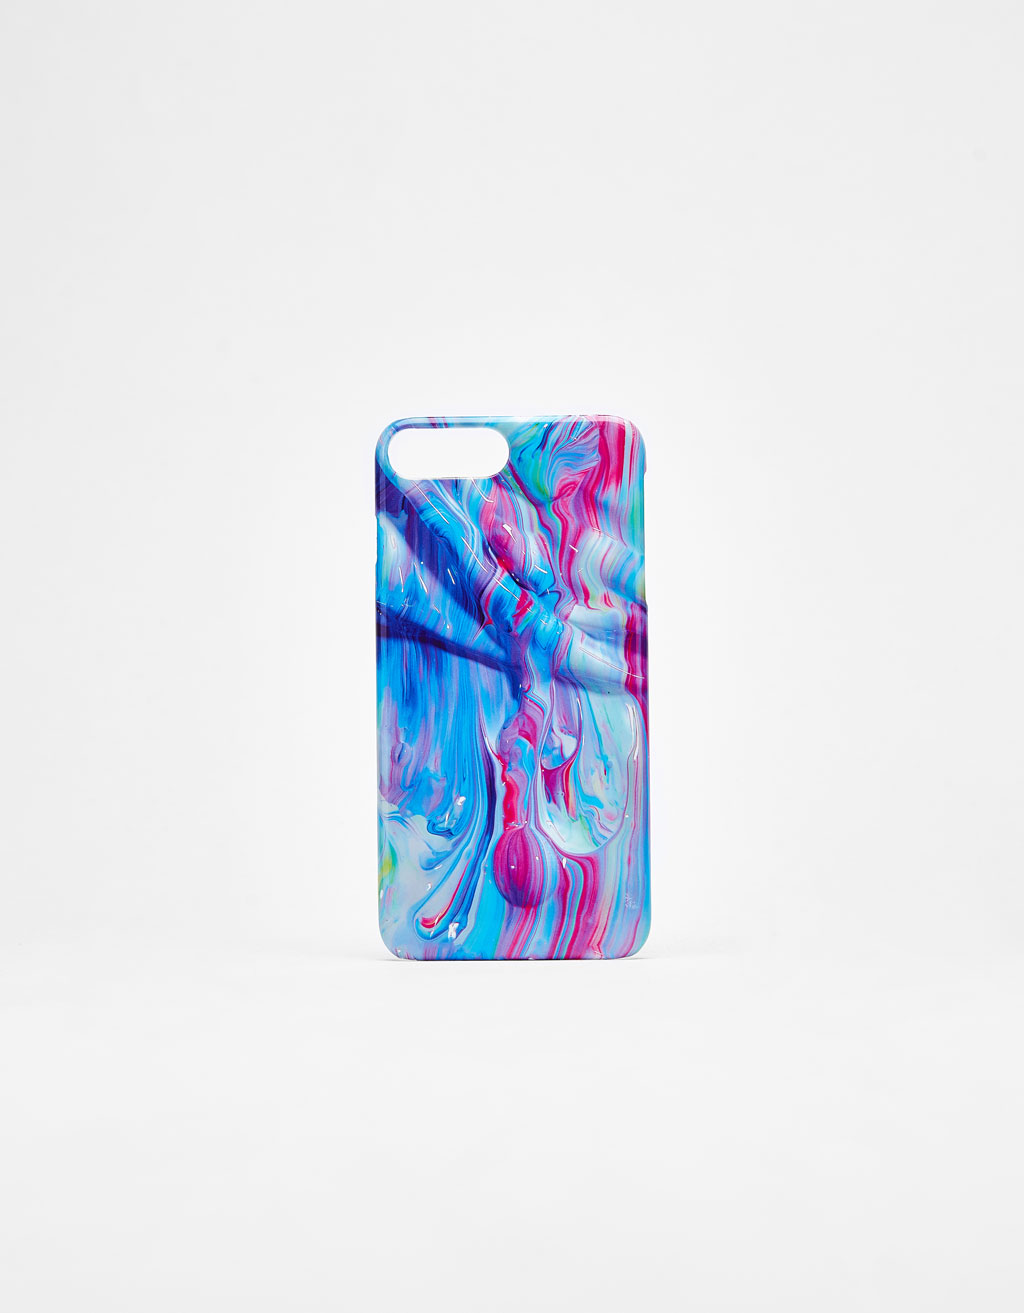 Coque aquarelle iPhone 6plus/7Plus/8Plus